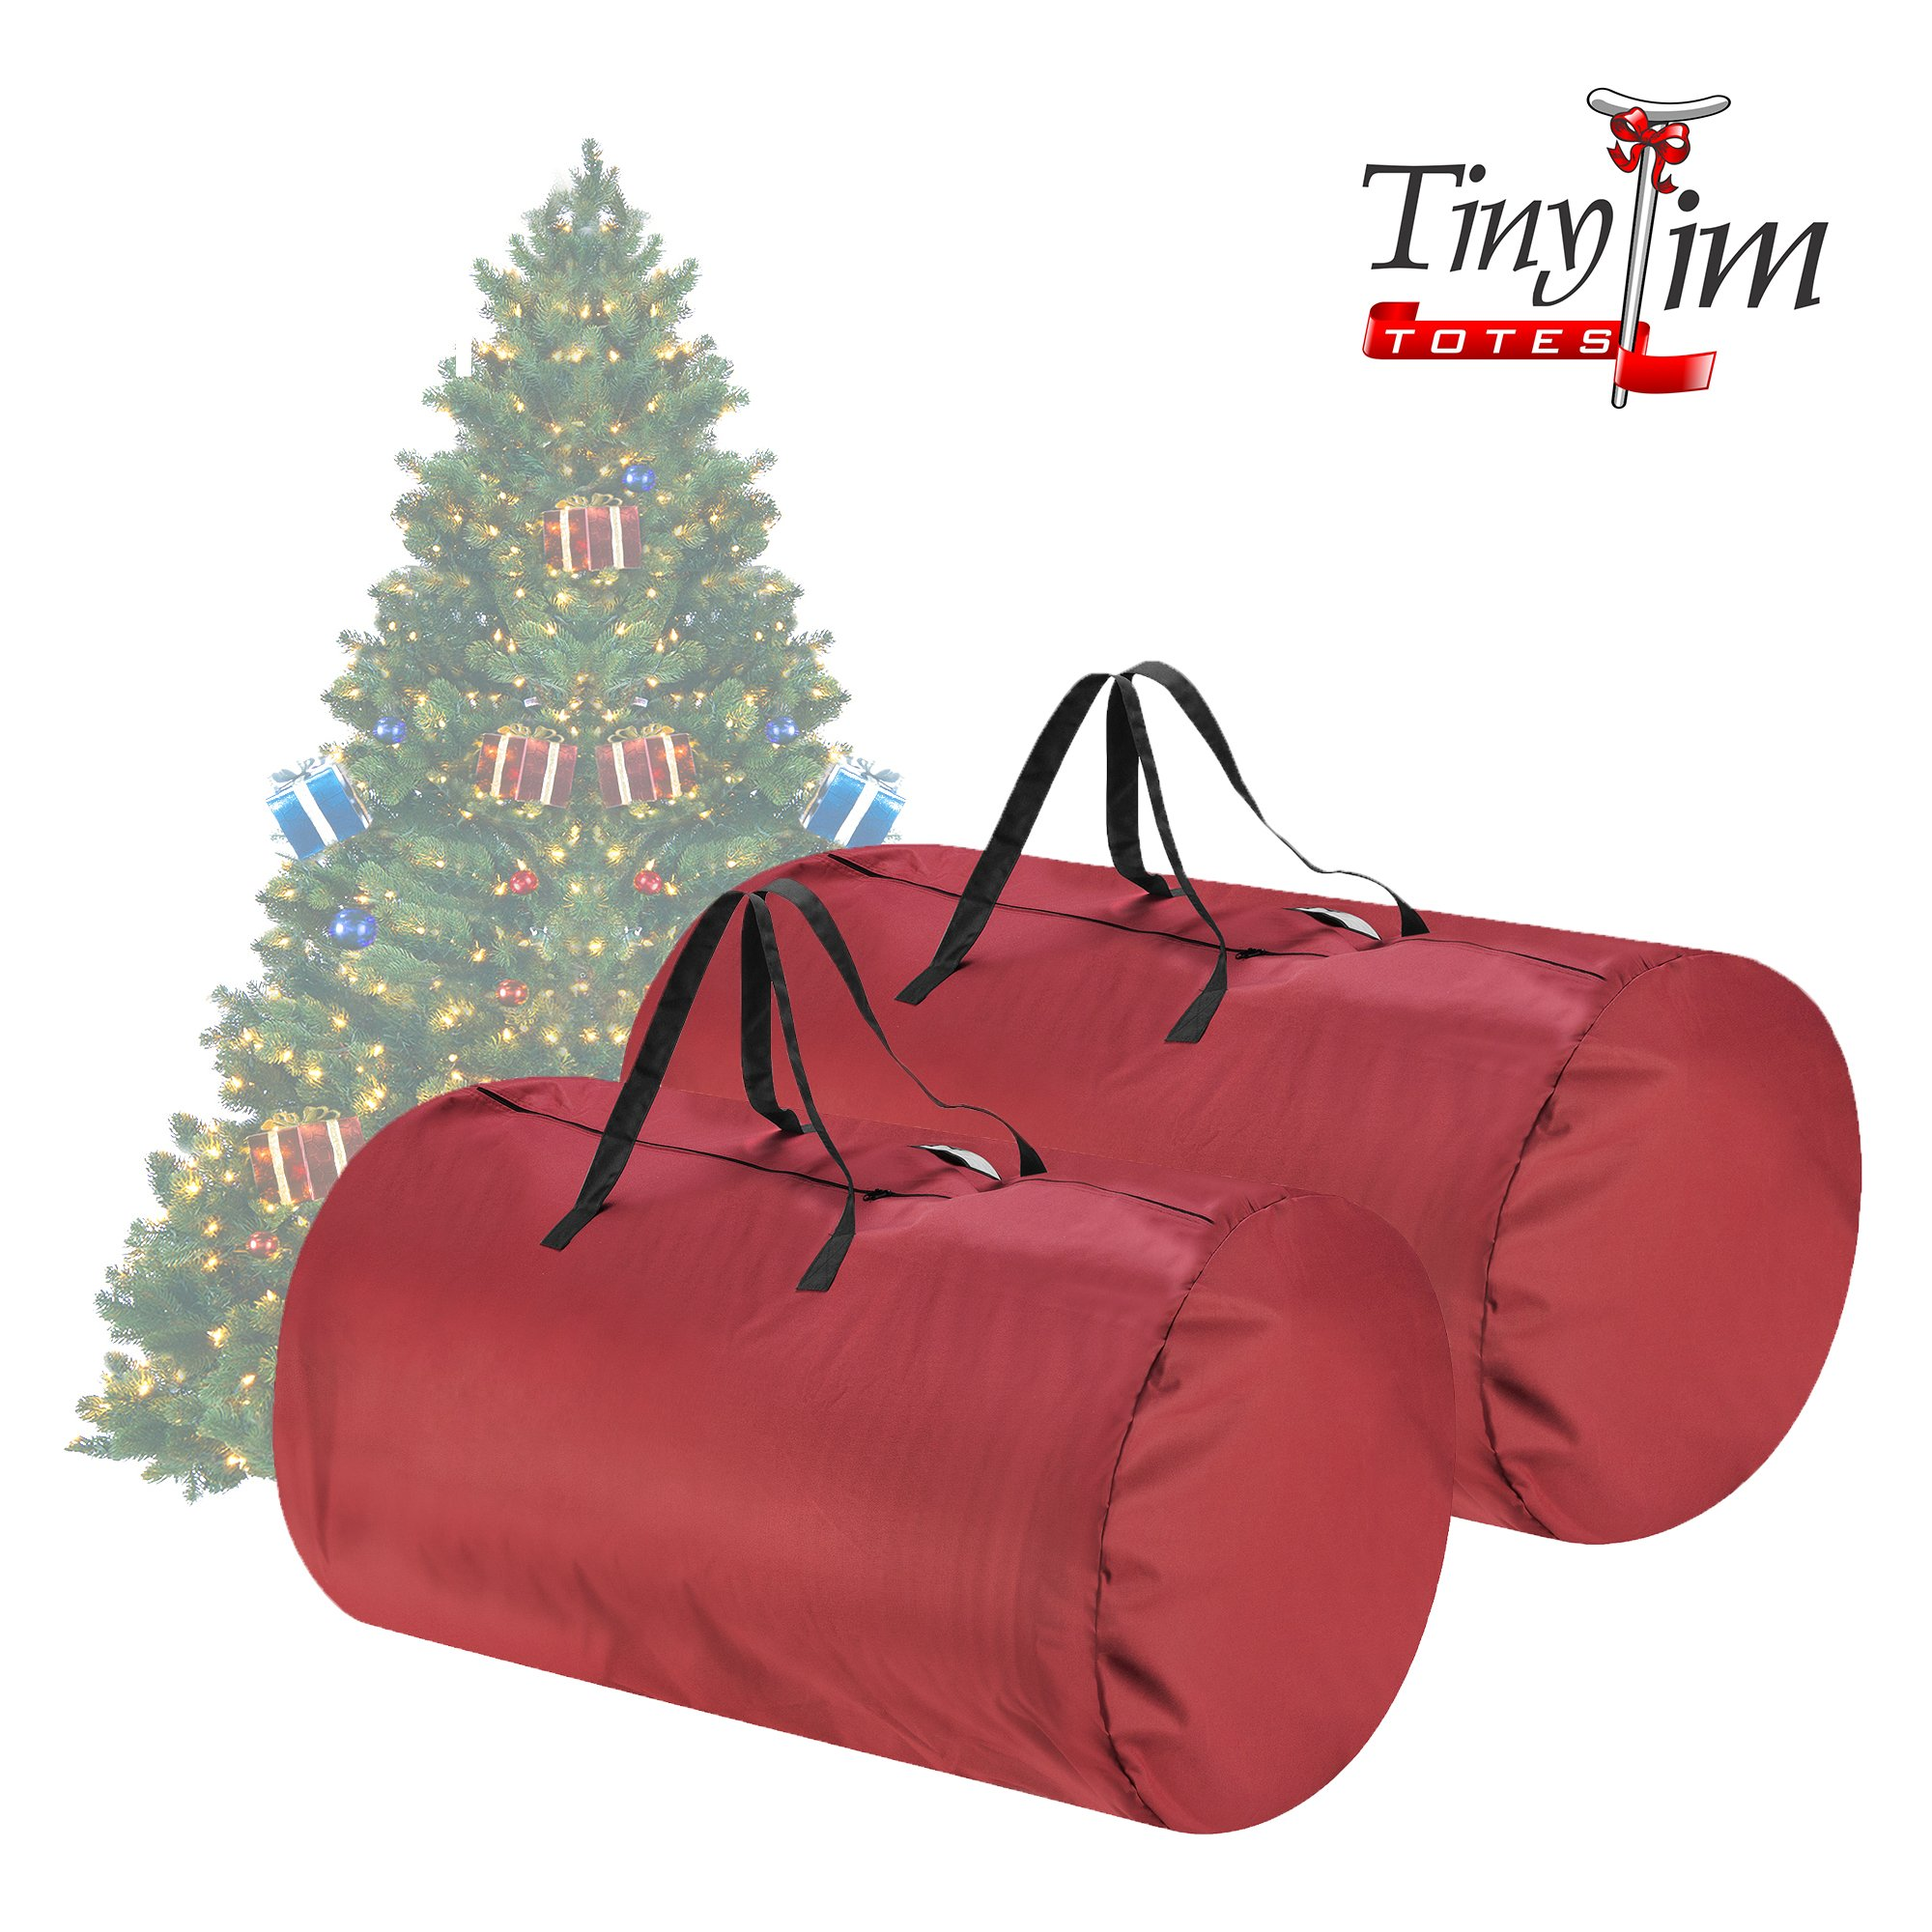 Tiny Tim Totes 83-DT5566 Premium 2 Canvas Christmas Storage Bags | Extra Large for 9 7.5 Foot Trees, 2-Pack, Red